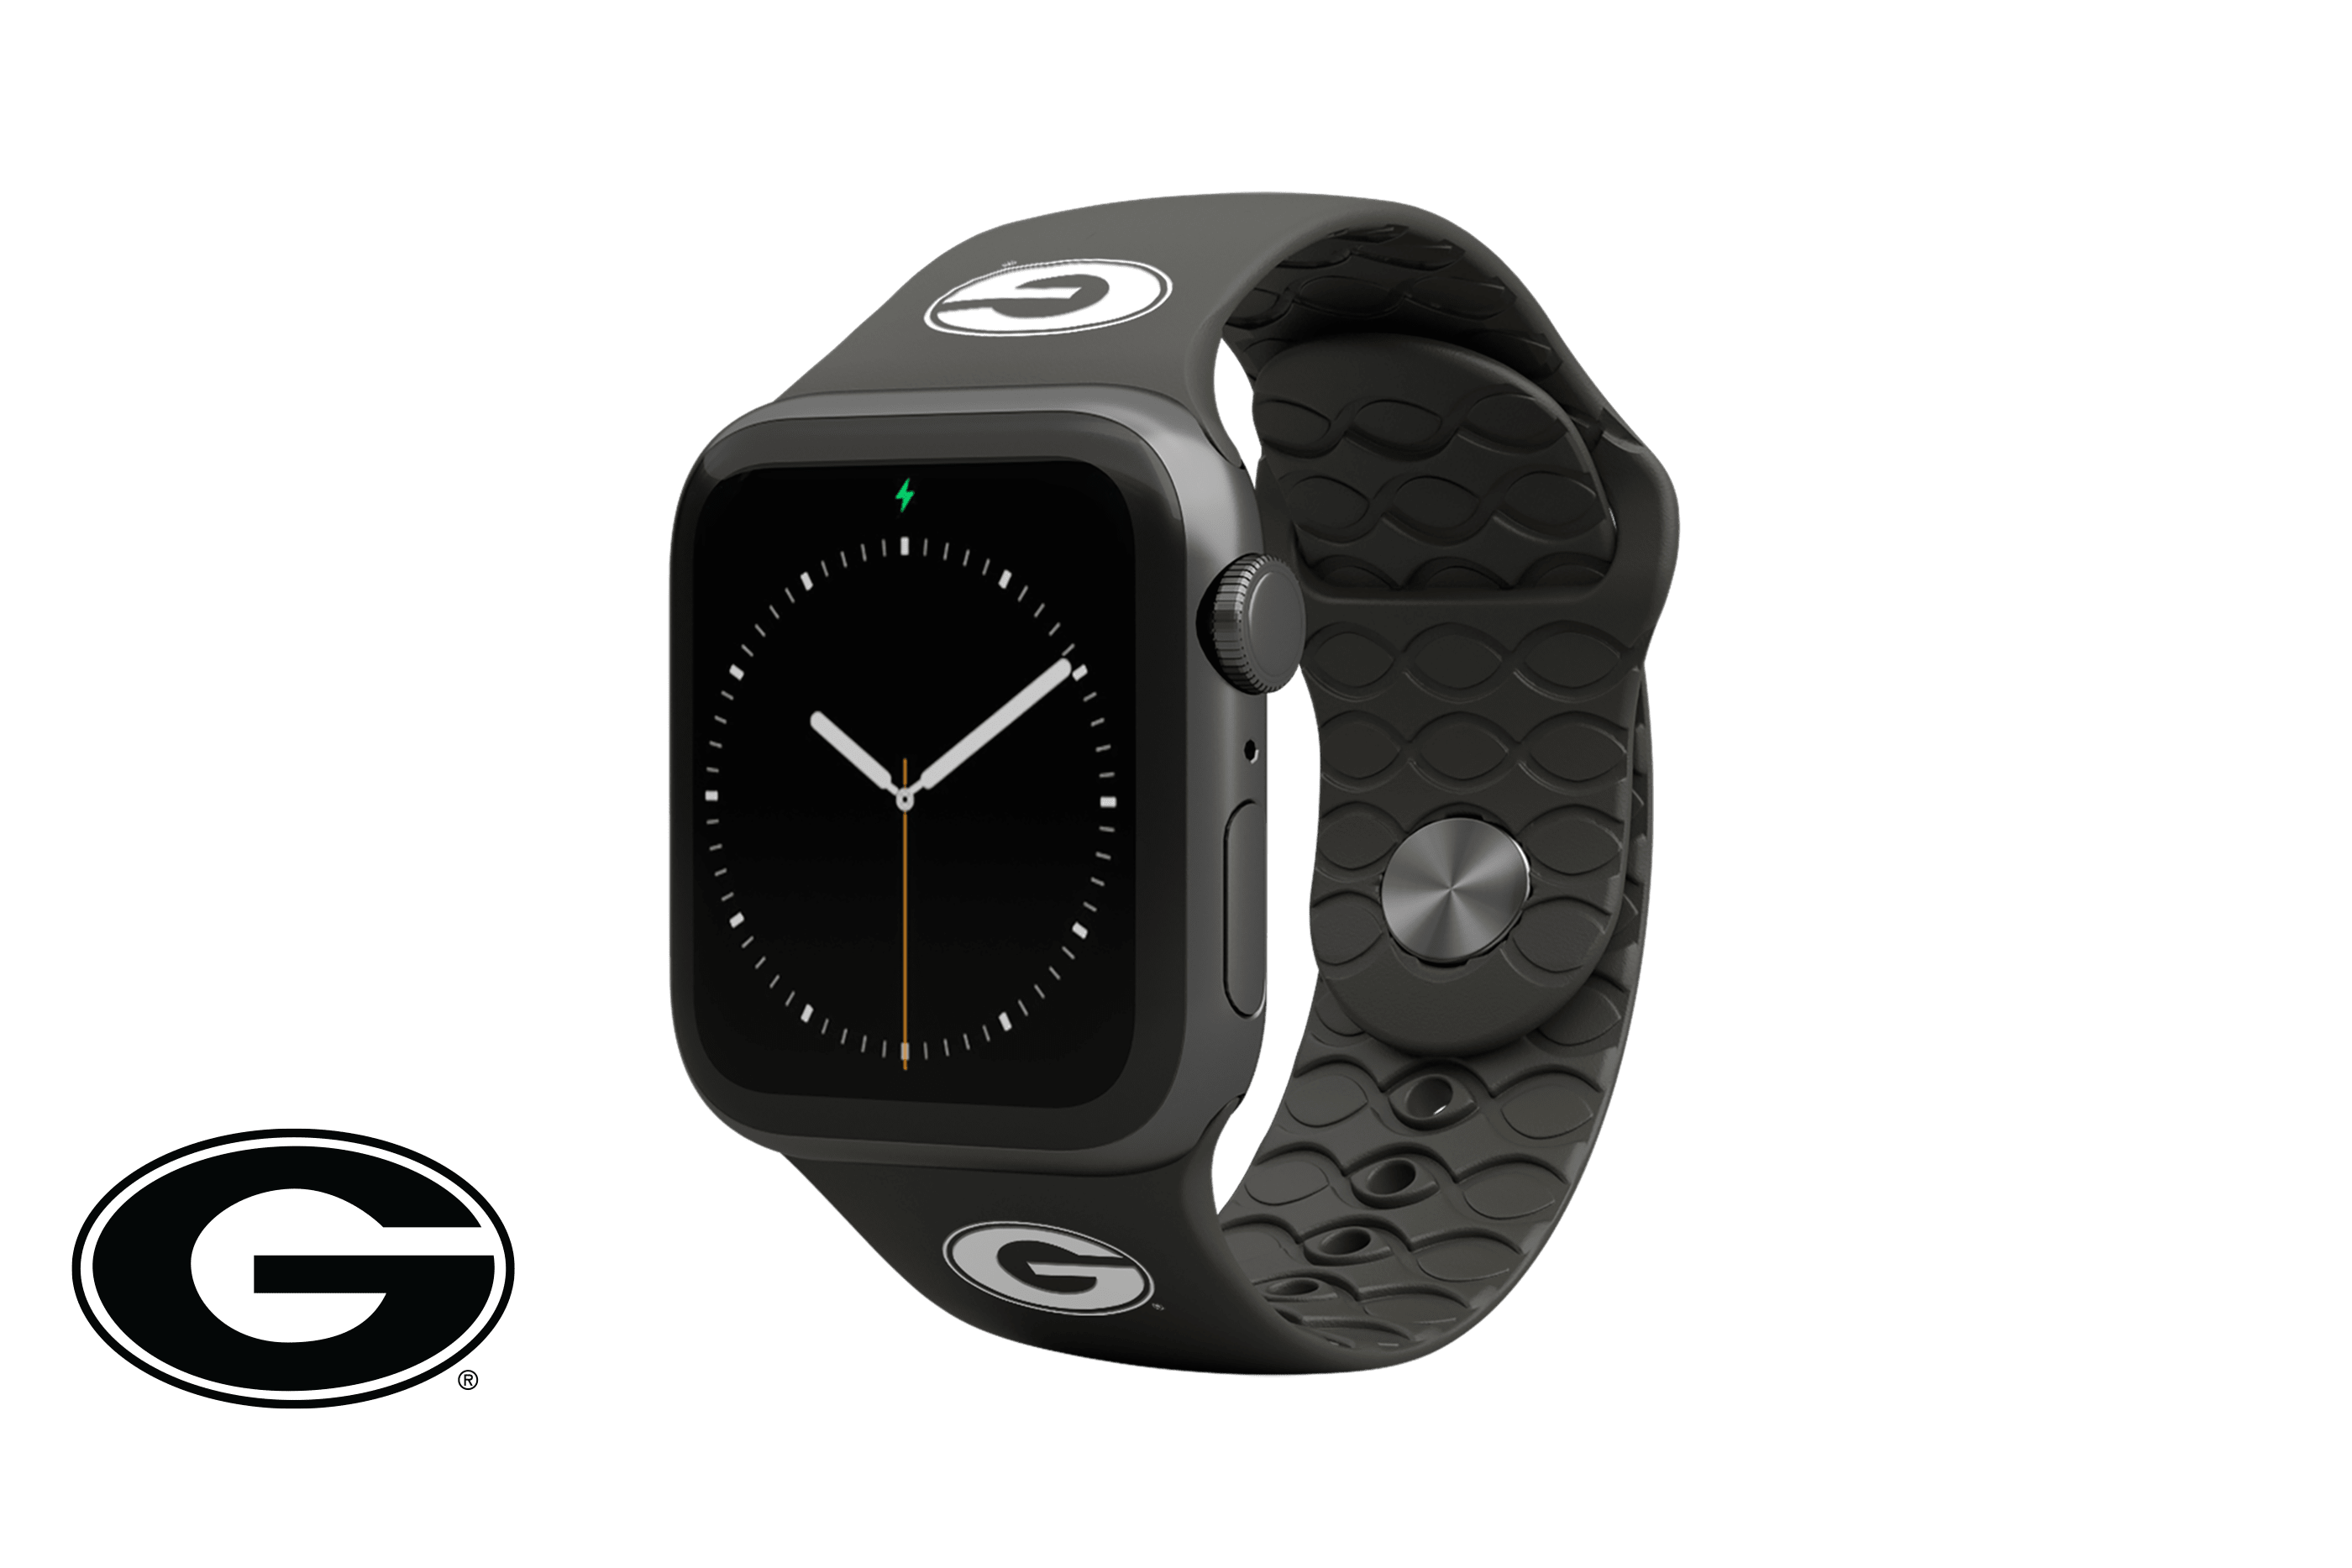 Apple Watch Band College Georgia Black with gray hardware viewed front on